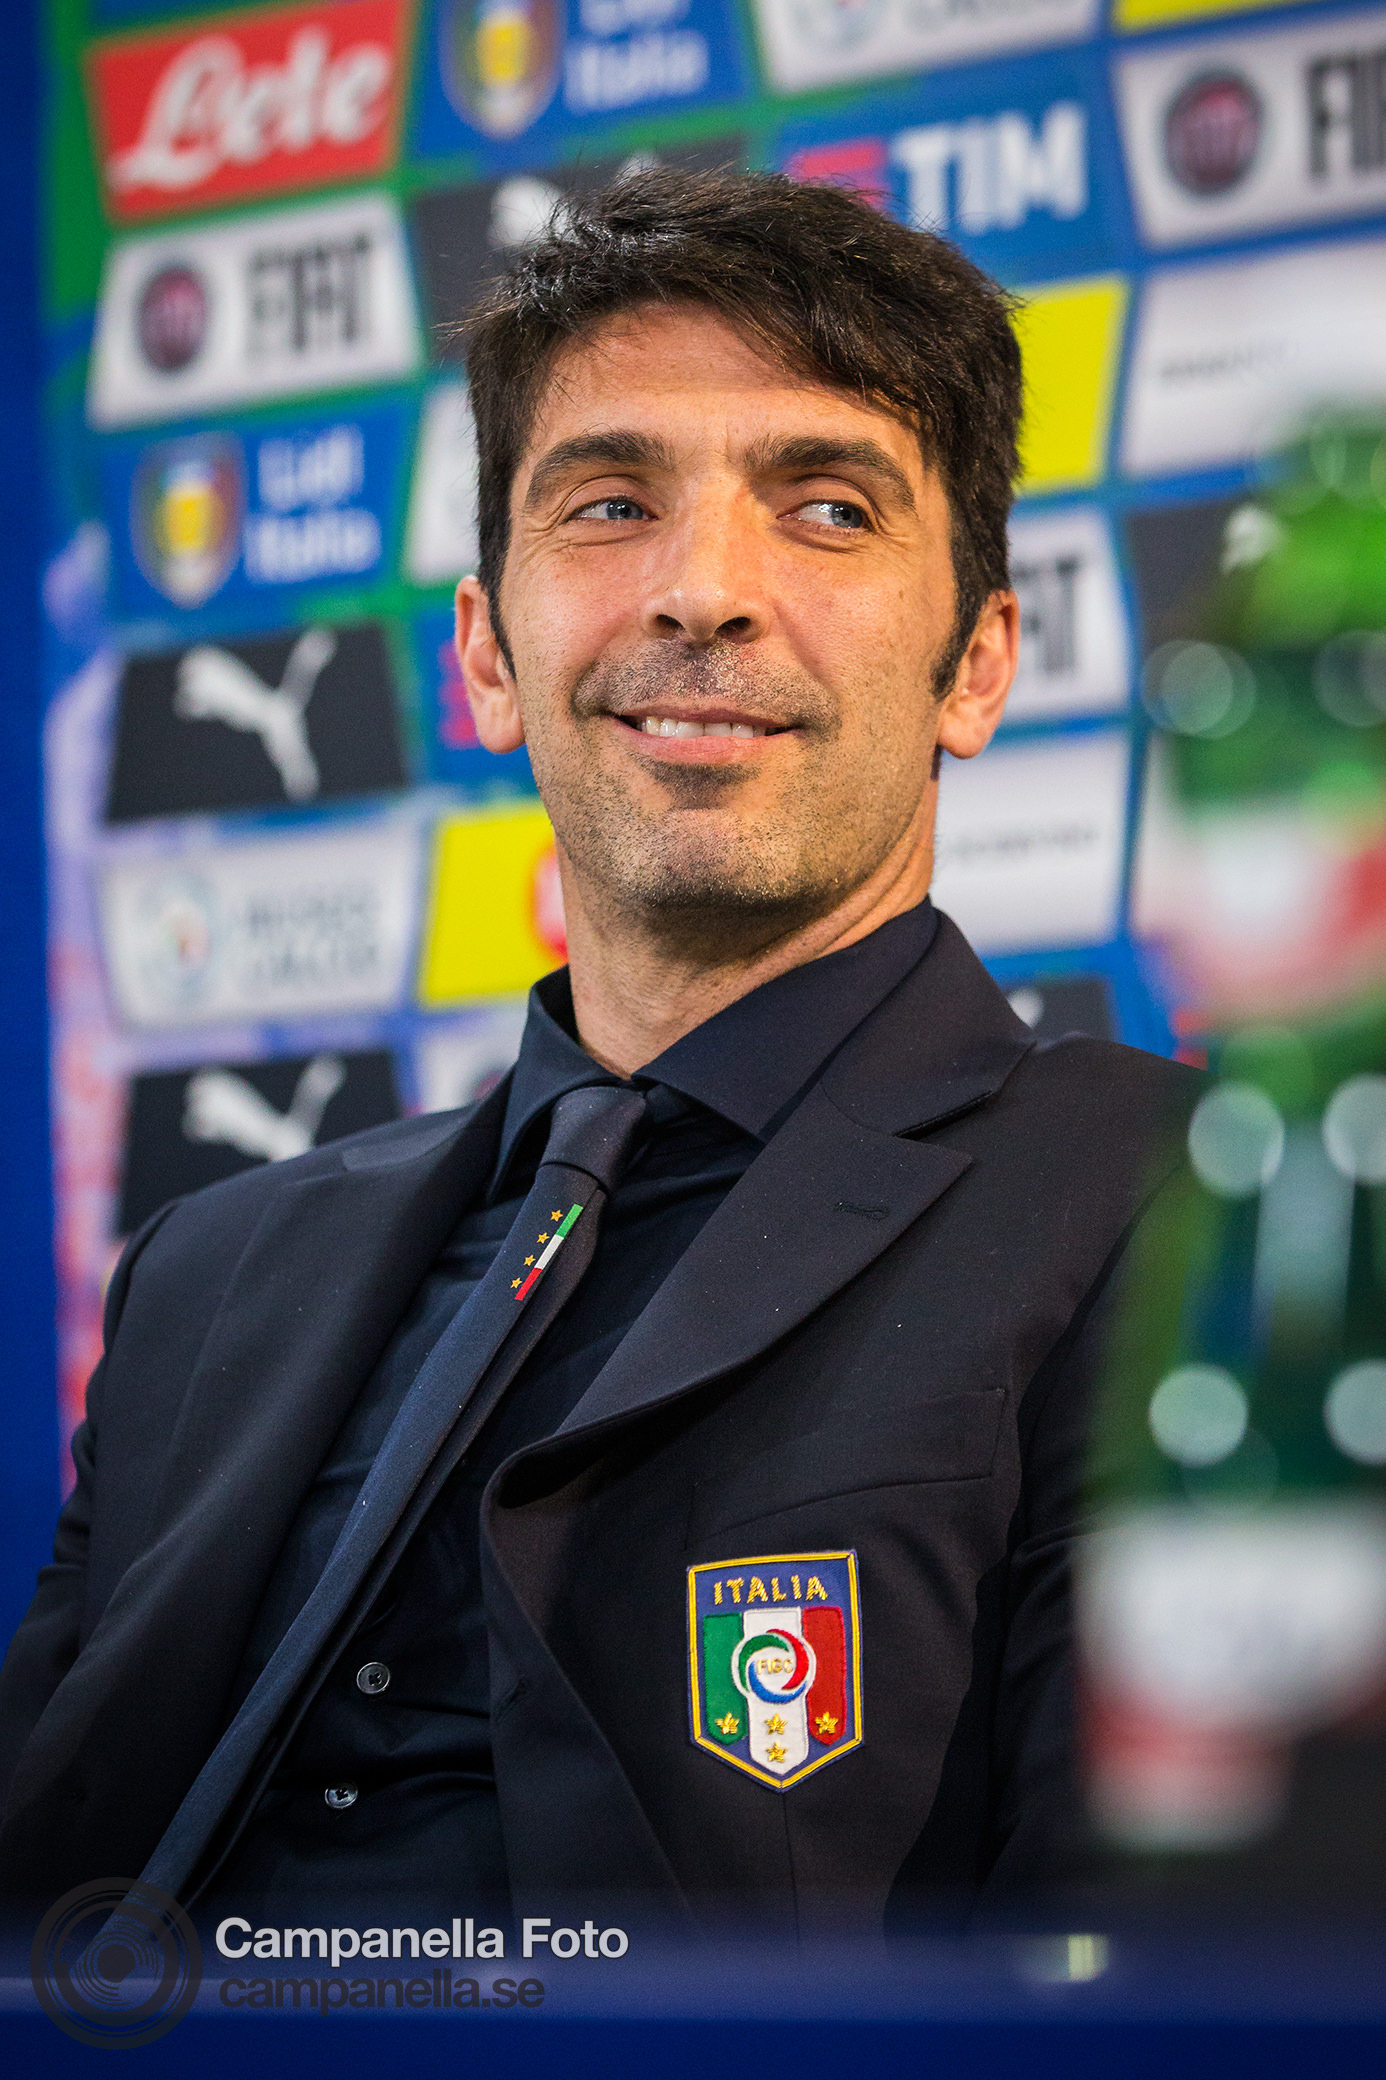 Tomorrow Italy meets Spain in Udine - Michael Campanella Photography